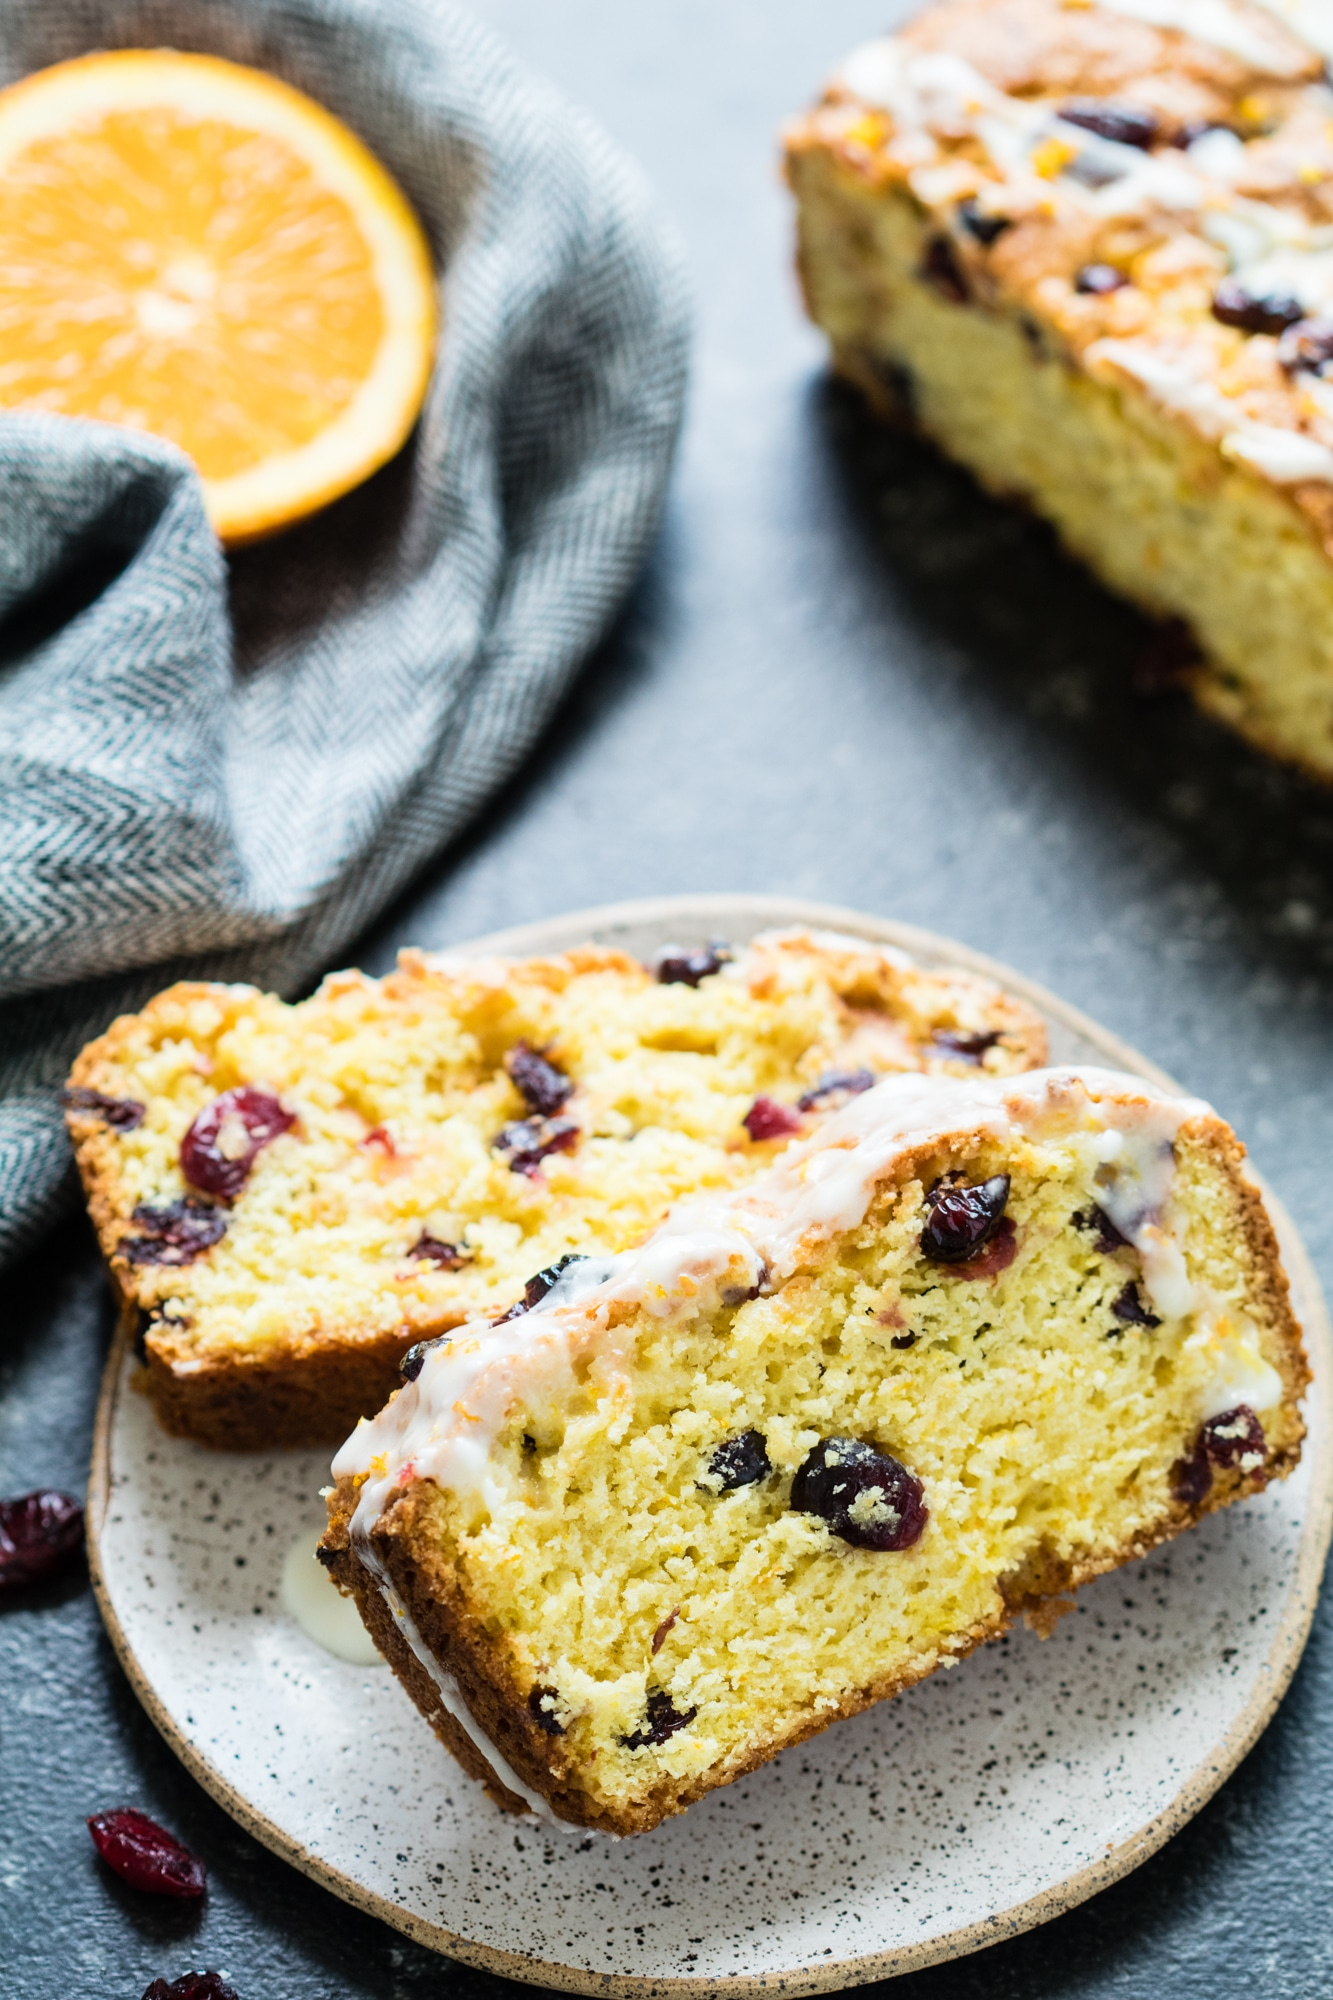 This Cranberry Orange Bread is everything you'd expect...and then some. You'll taste the fresh flavor of orange and the sweetness of dried cranberries in every bite! krollskorner.com